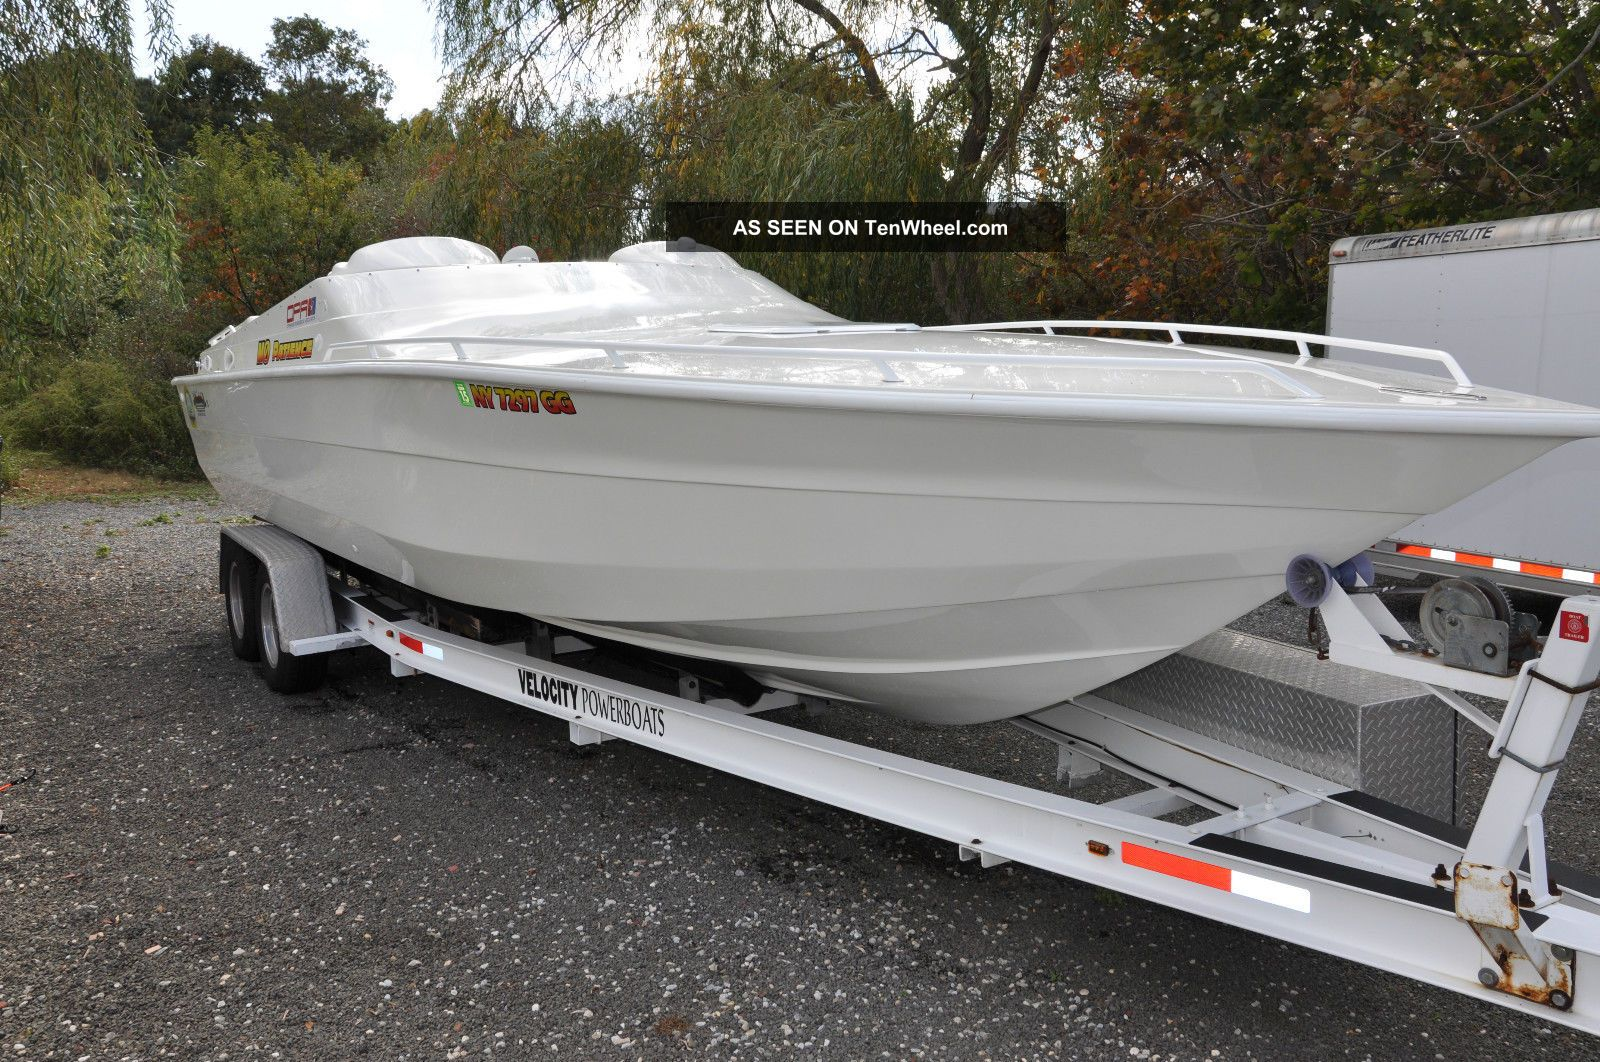 2001 Velocity 28 Speedboat Other Powerboats photo